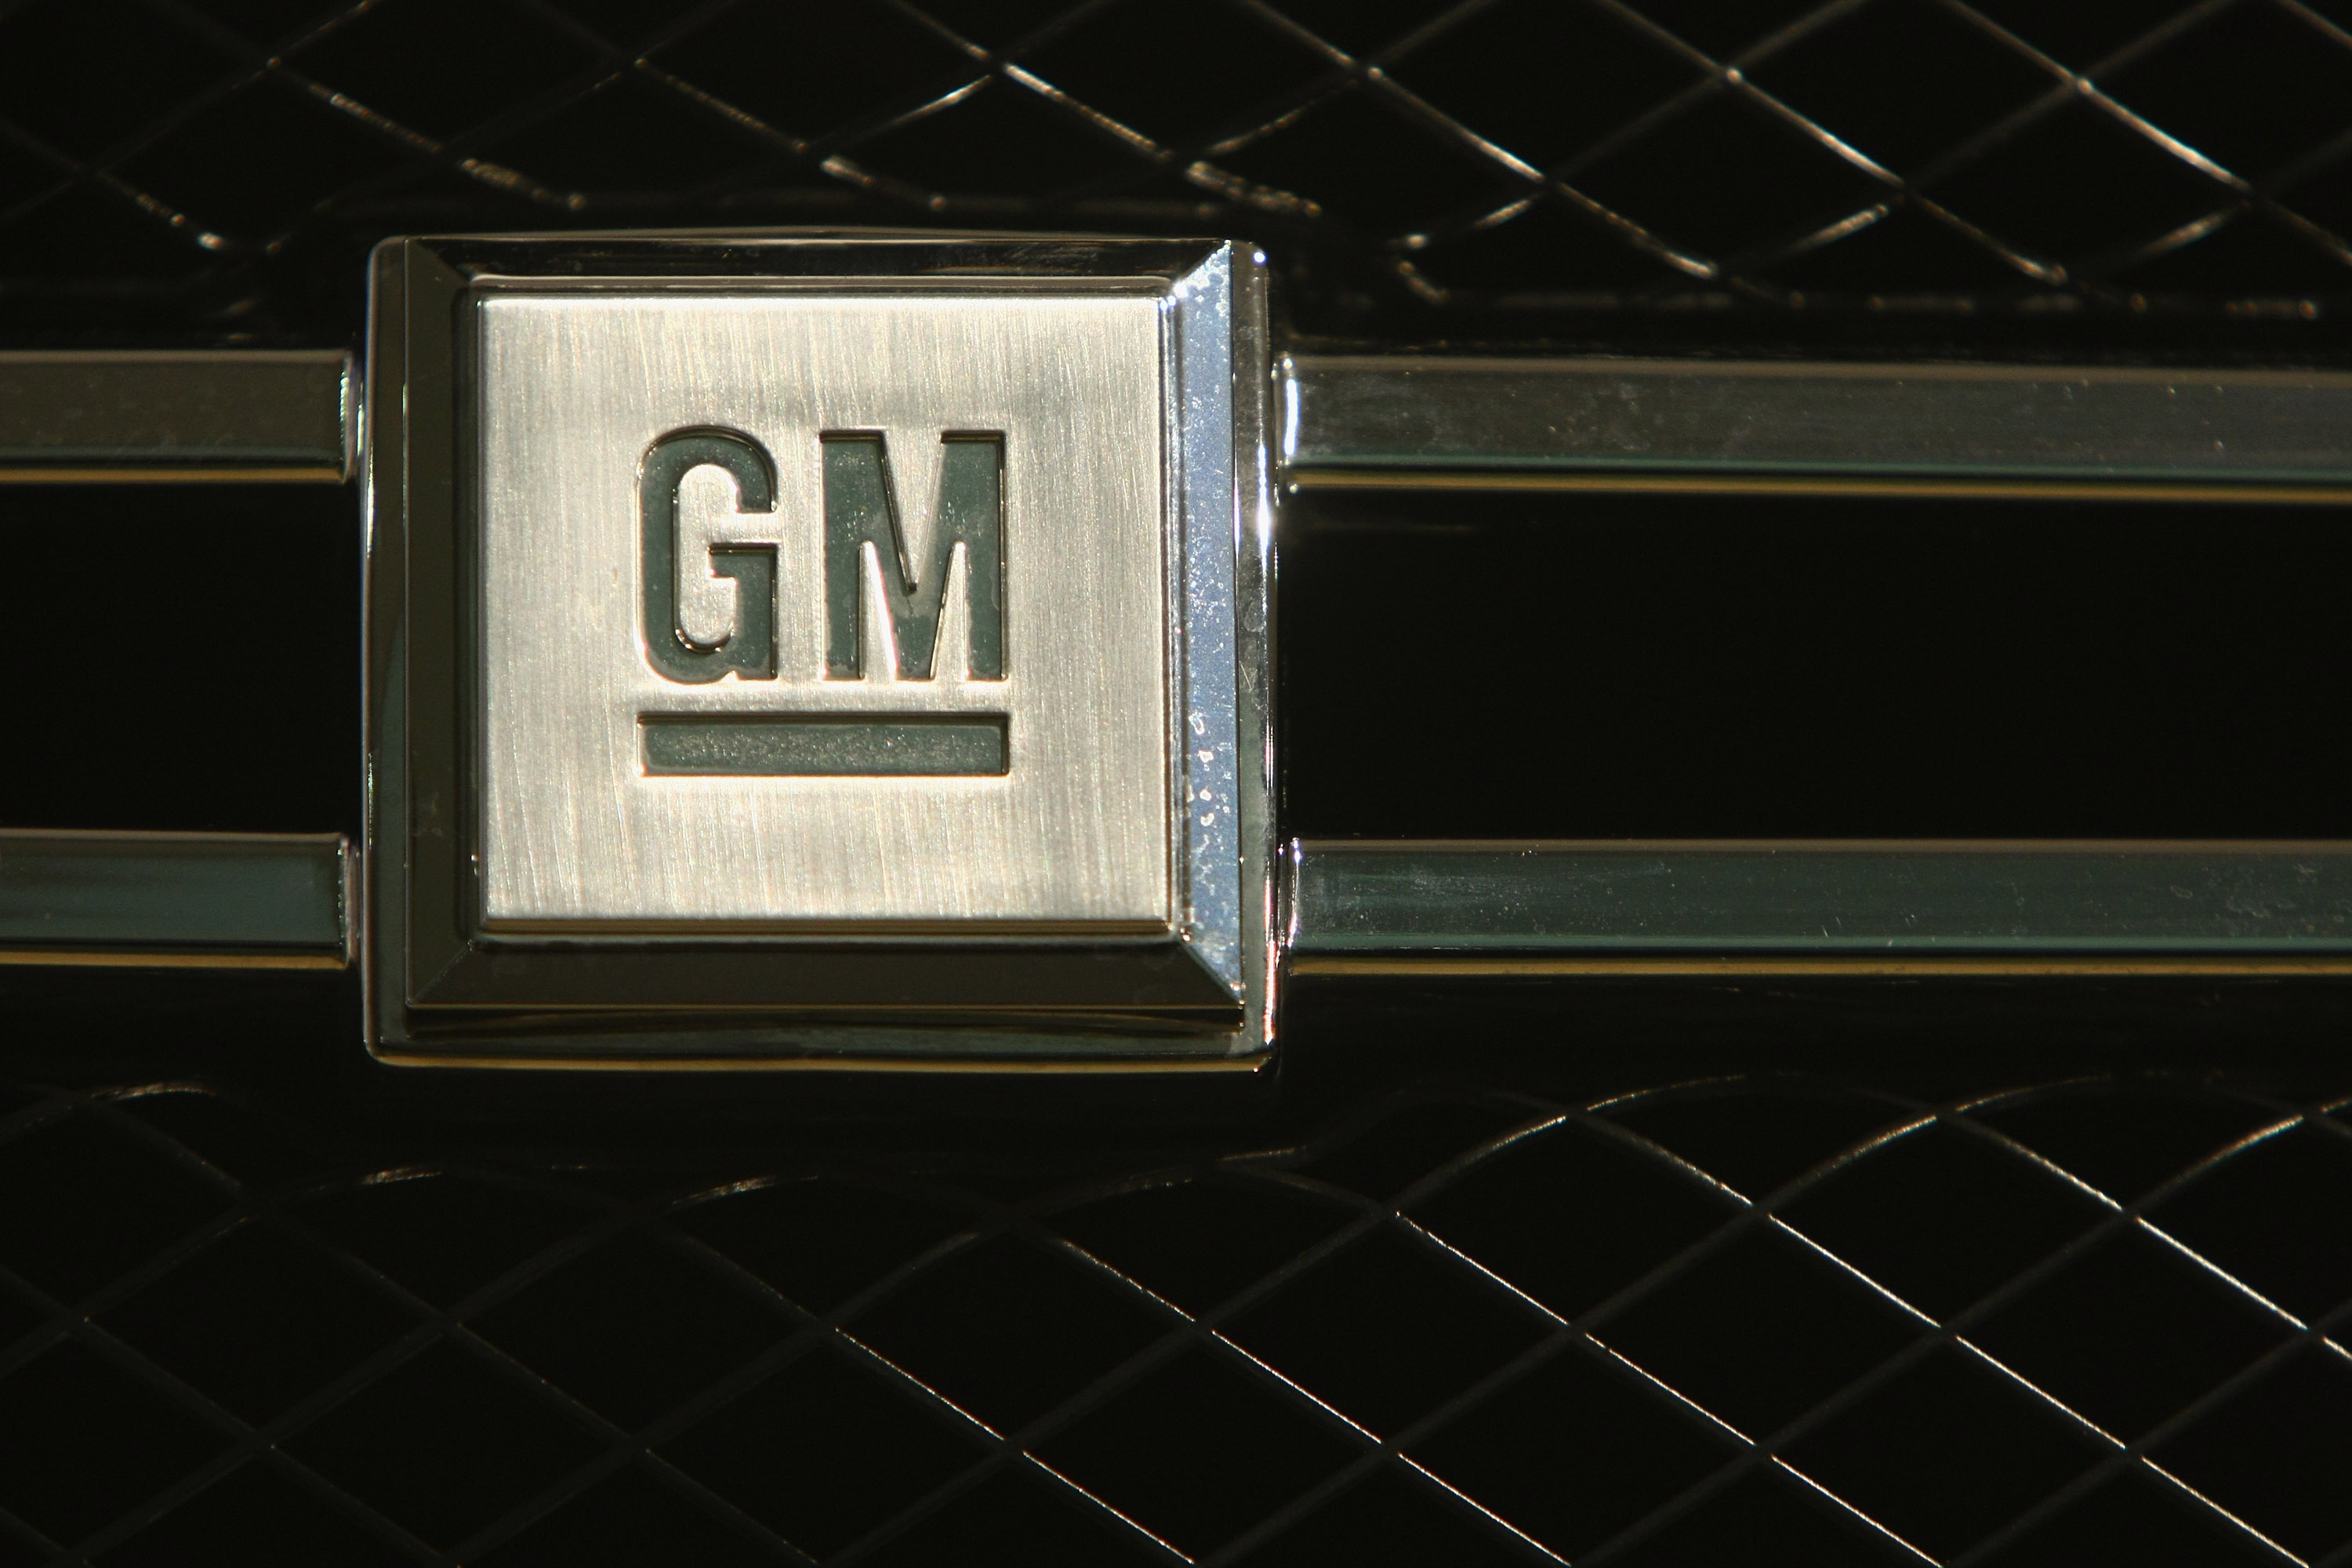 BERLIN - NOVEMBER 26: The logo of U.S. carmaker General Motors, or GM, is visible on the front grille of a GM Hydrogen 4 fuel cell-powered car at a presentation by Opel and GM on November 26, 2008 in Berlin, Germany. Opel, which is ownded by GM, has asked the German government for help in overcoming its difficulties resulting from the current financial crisis and the serious difficulties of GM. (Photo by Sean Gallup/Getty Images)